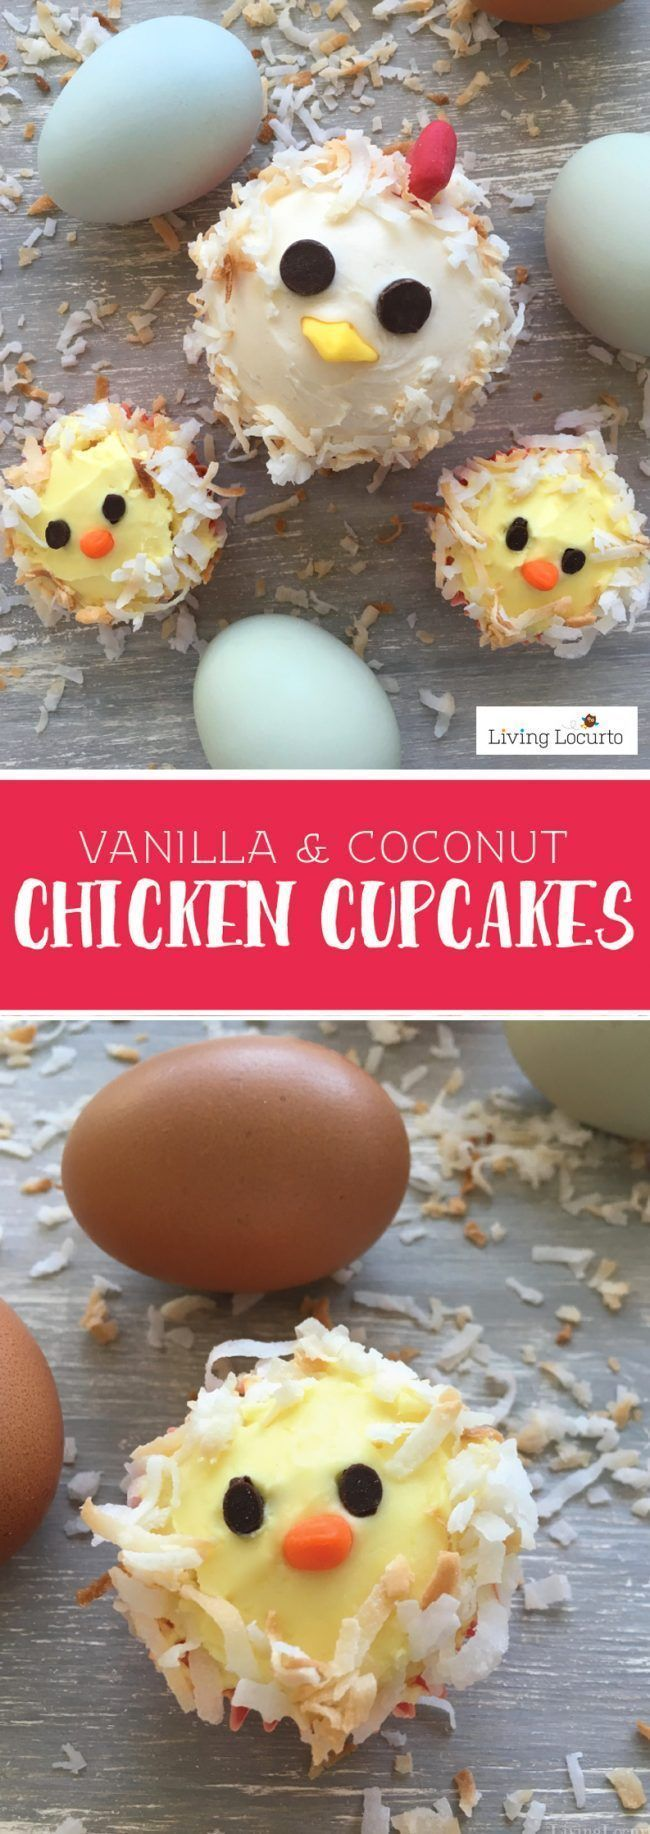 Mama chicken and baby chick cupcakes are an adorable party idea! These cute chicken cakes are a perfect way to celebrate a birthday, Easter or baby shower. http://LivingLocurto.com